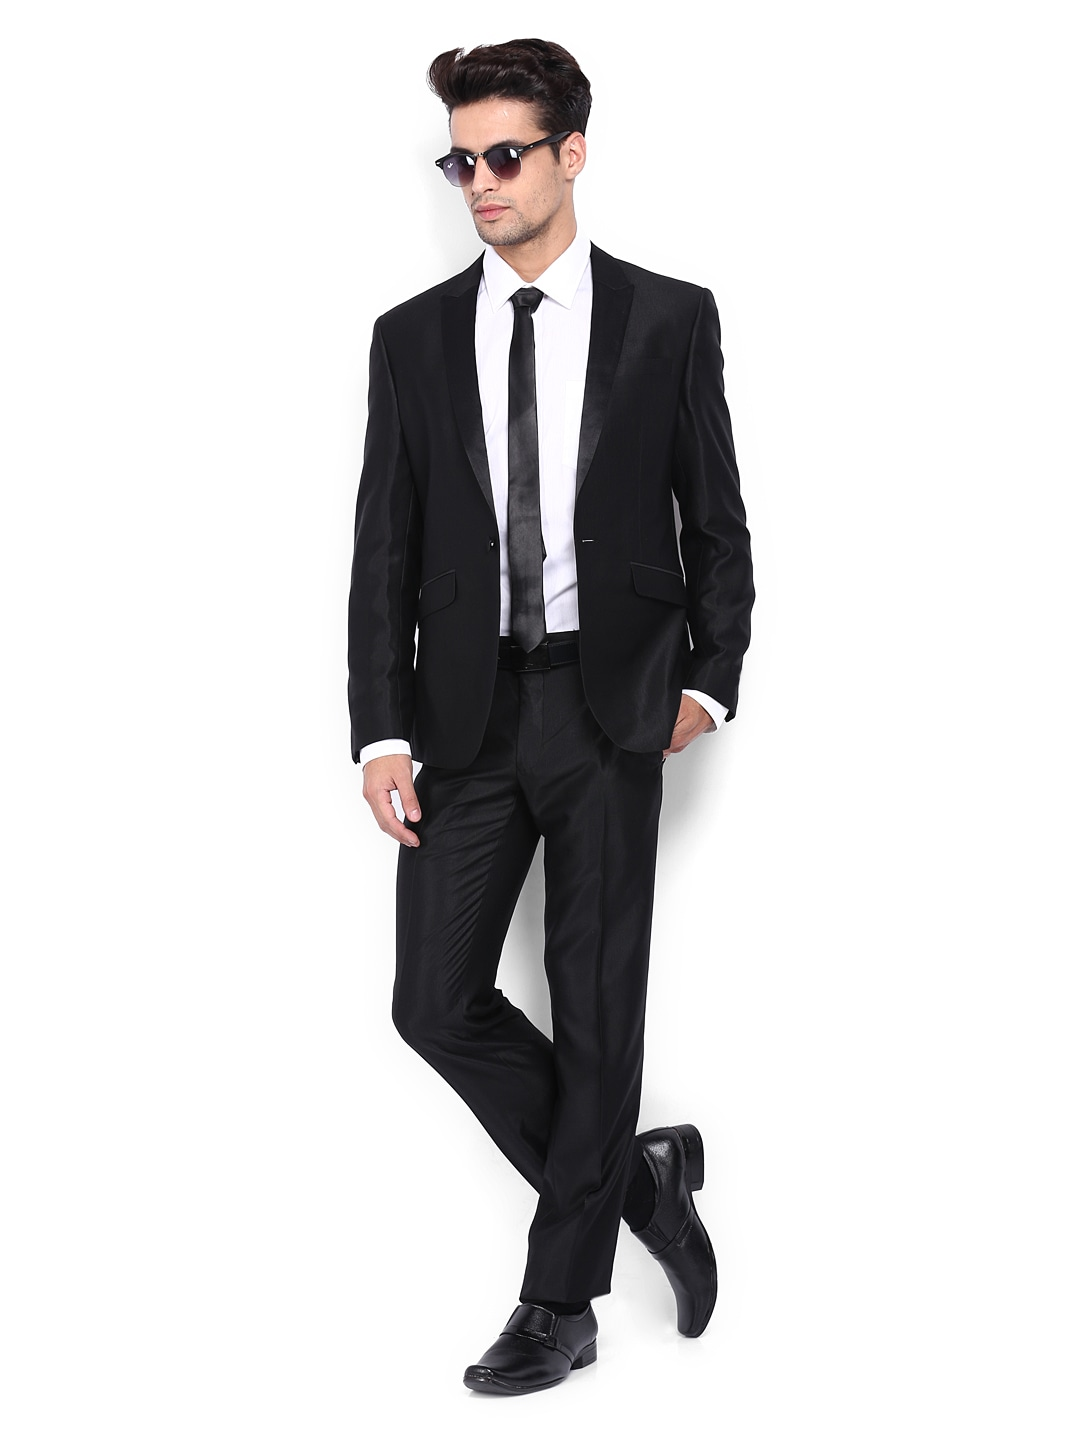 205b5eae49d Van heusen vhsu1c00958 Men Black Slim Fit Single Breasted Suit- Price in  India